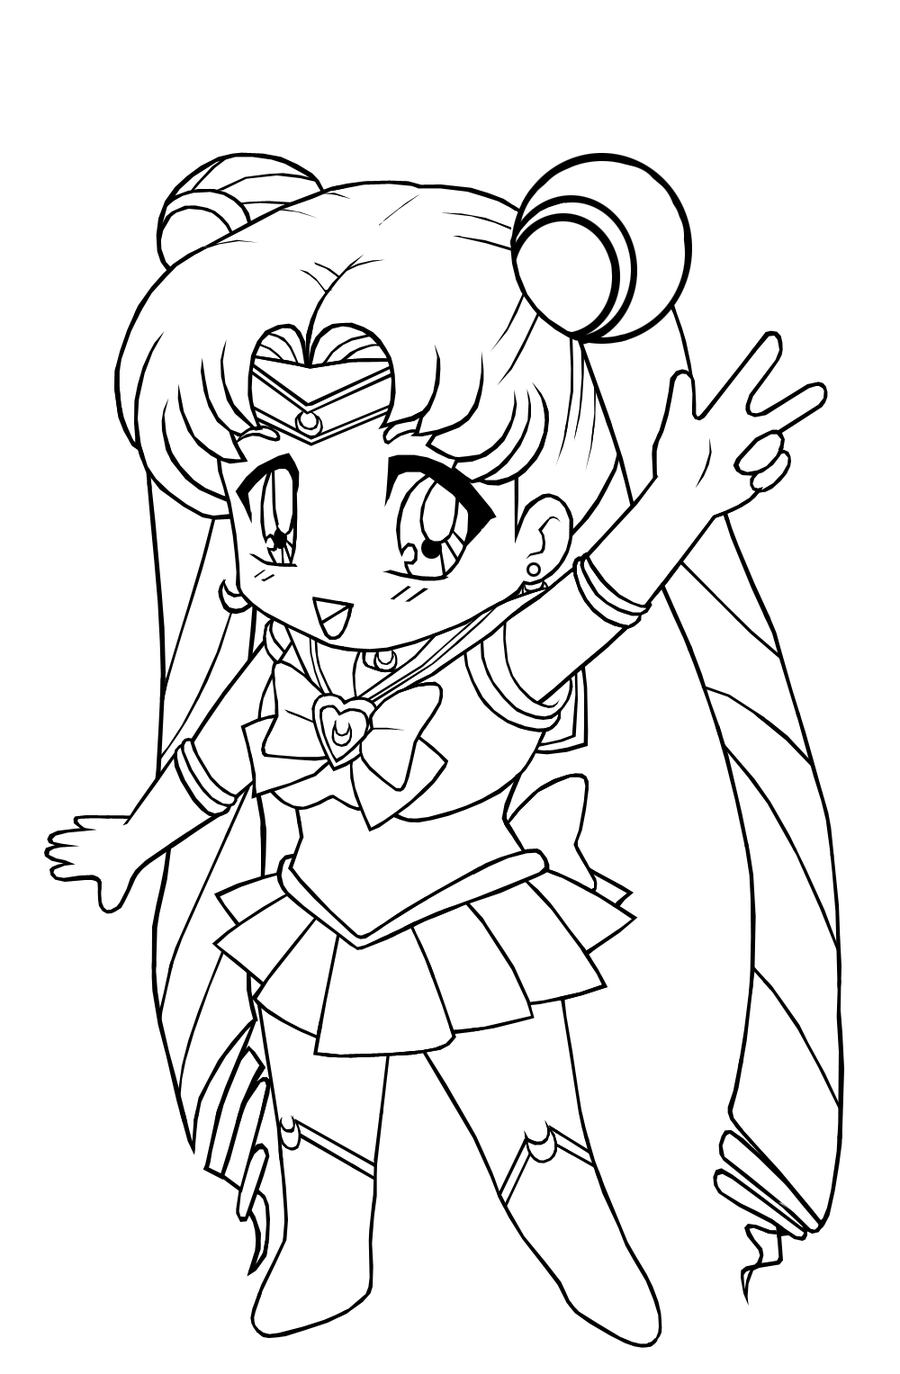 anime coloring pictures manga coloring pages to download and print for free pictures anime coloring